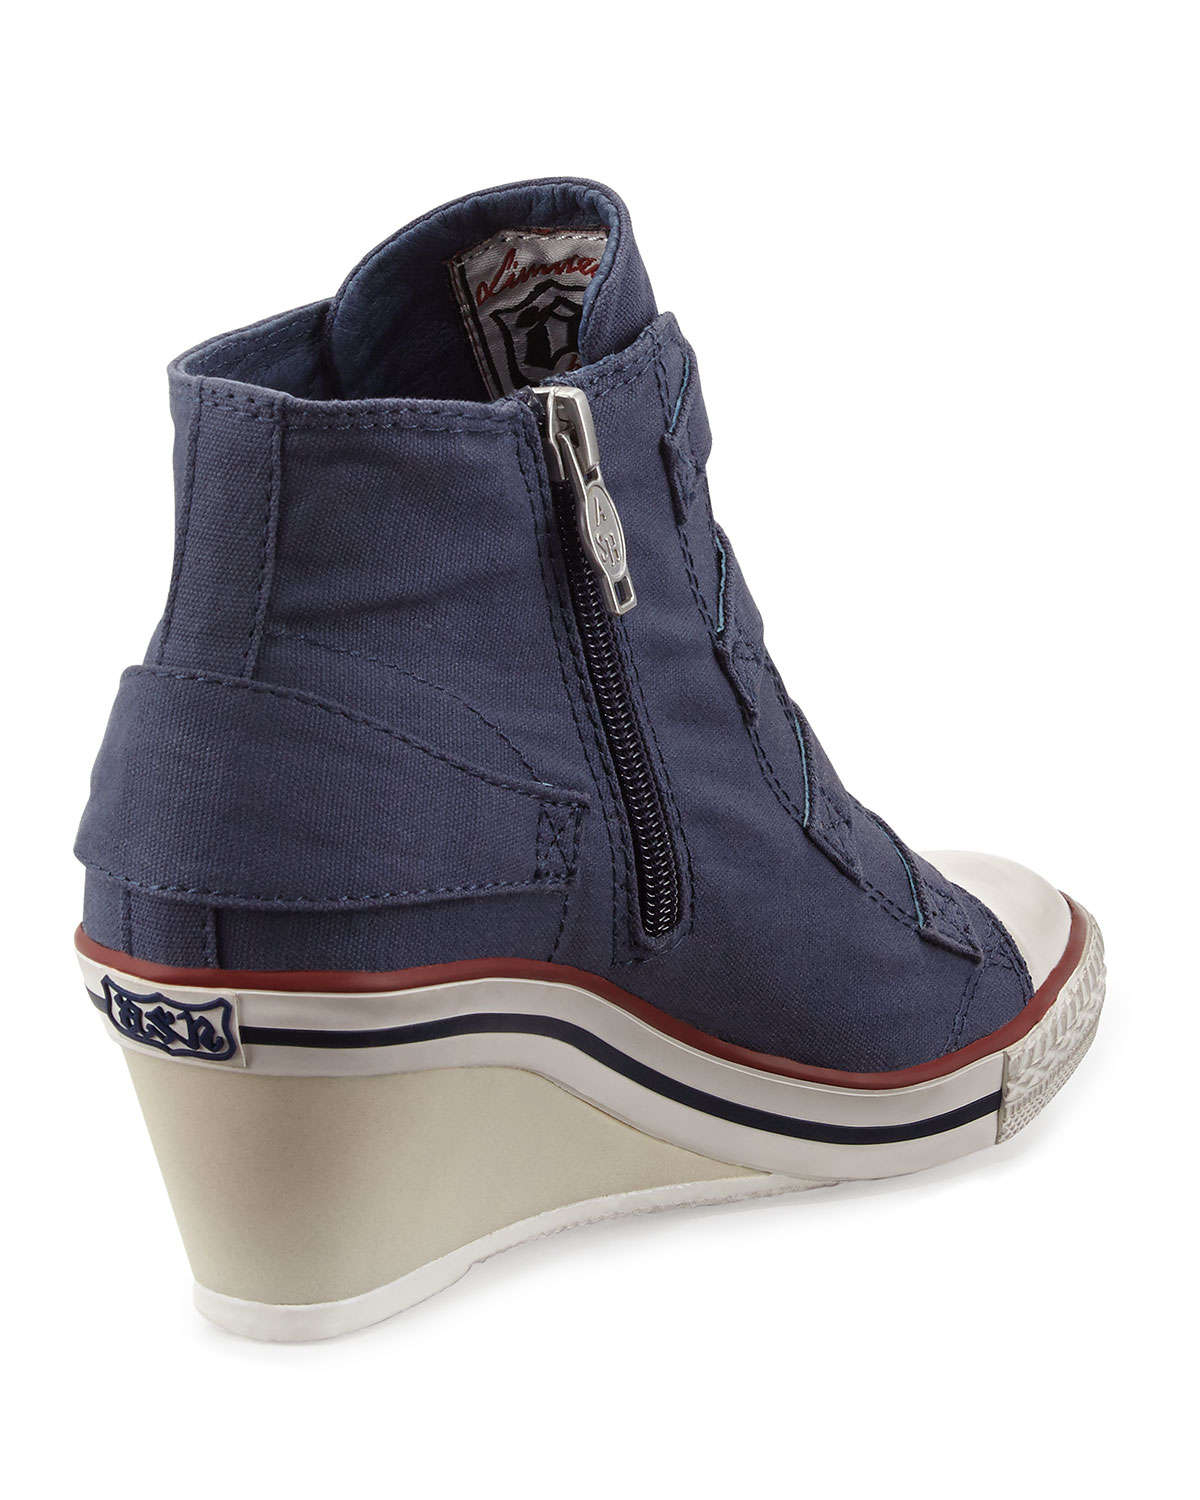 38fa702f86f Lyst - Ash Genialbis Buckled Wedge Sneakers in Blue